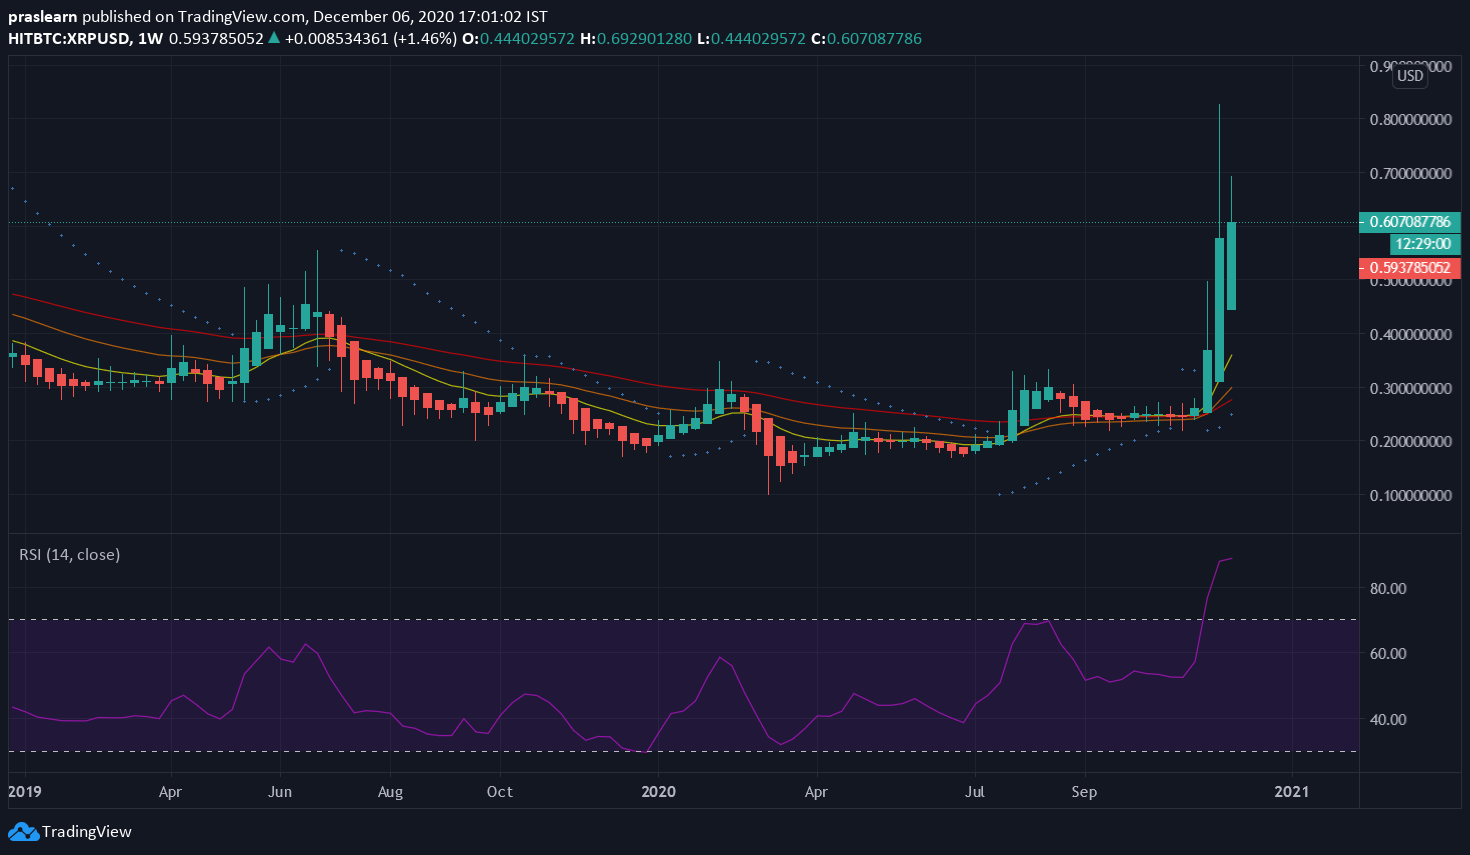 XRP/USD Weekly Chart: TradingView